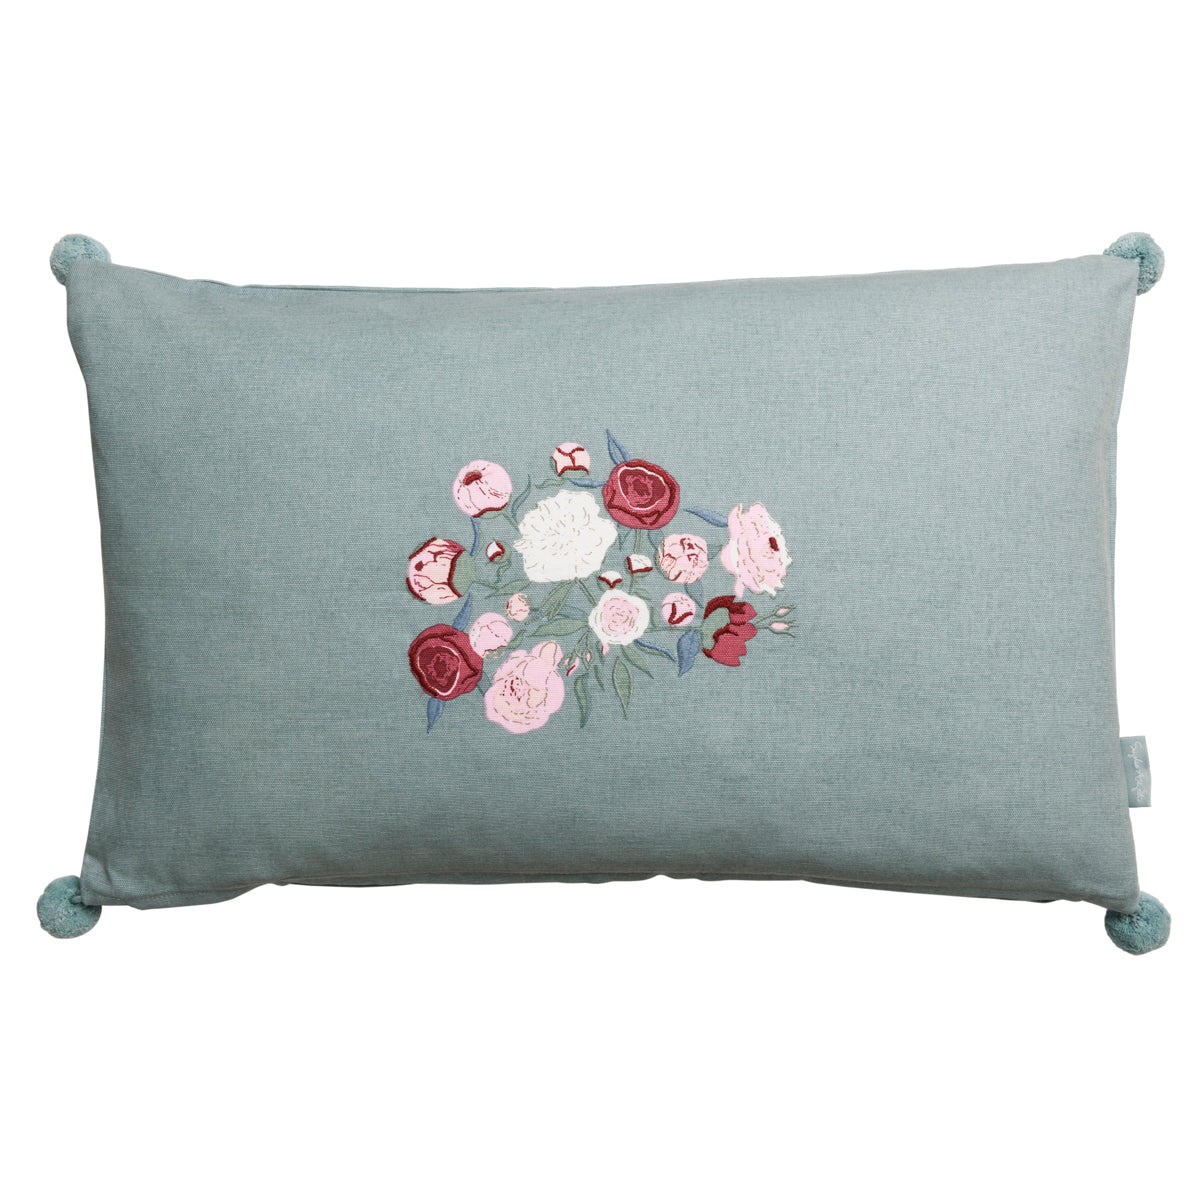 Cushion - embroidered - Peony